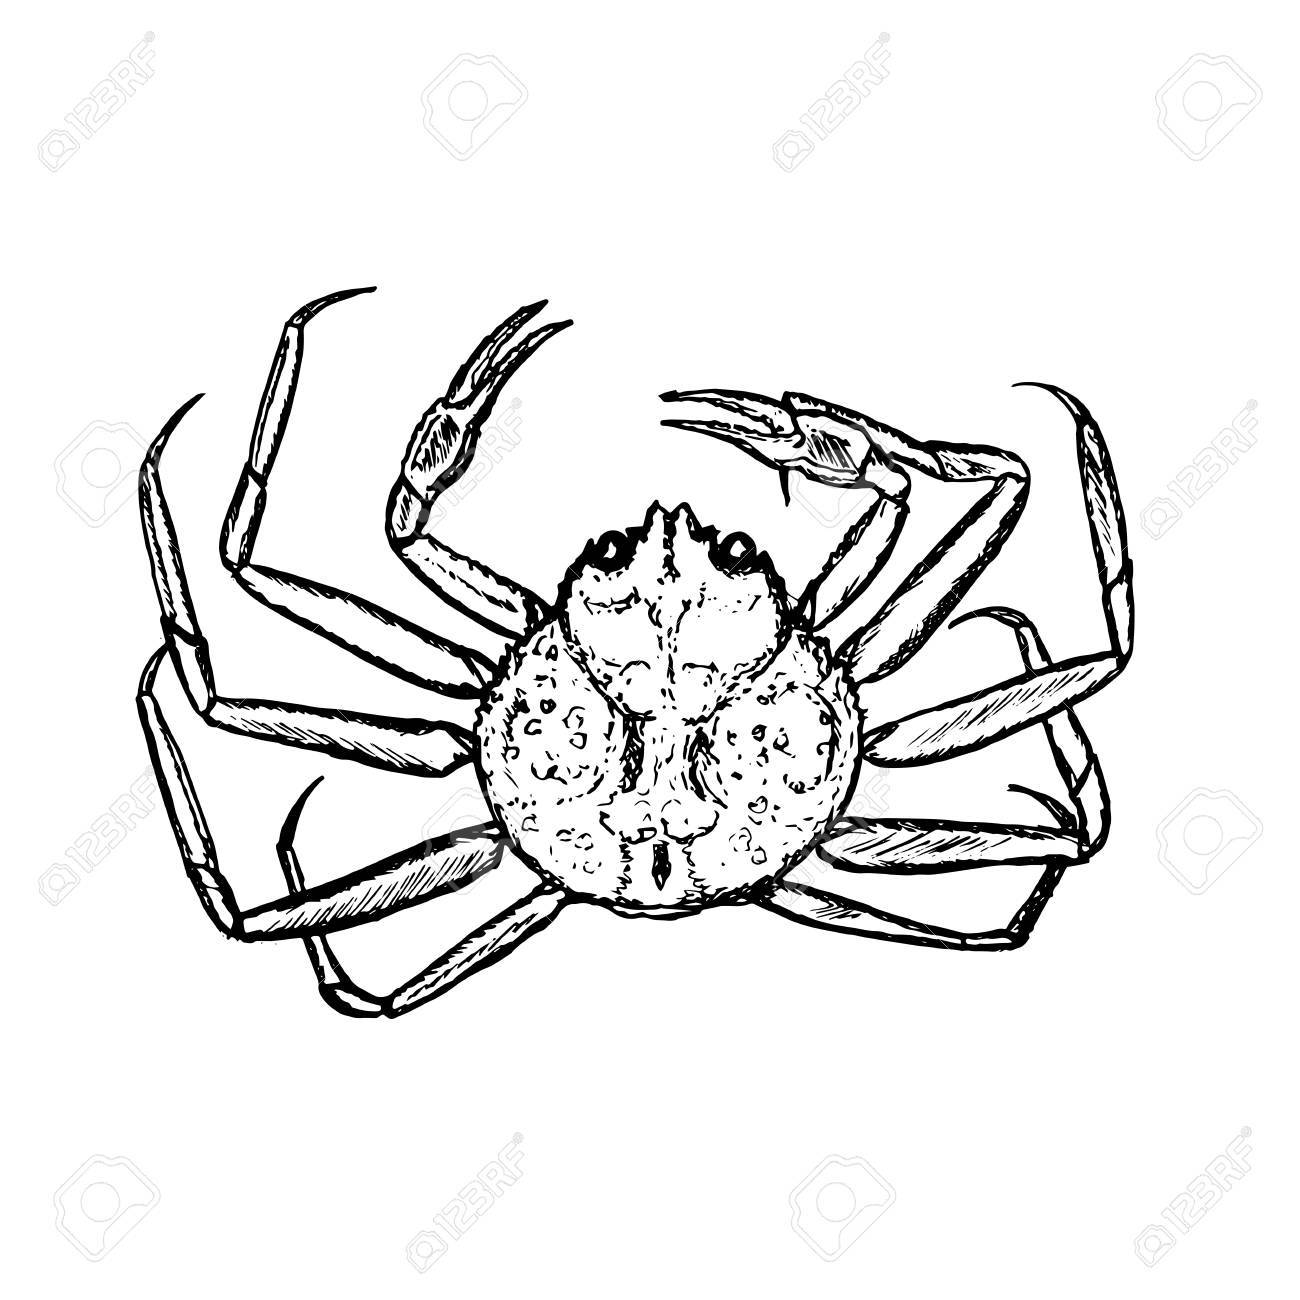 1300x1300 Hand Drawn Vector Crab, Outline Royalty Free Cliparts, Vectors